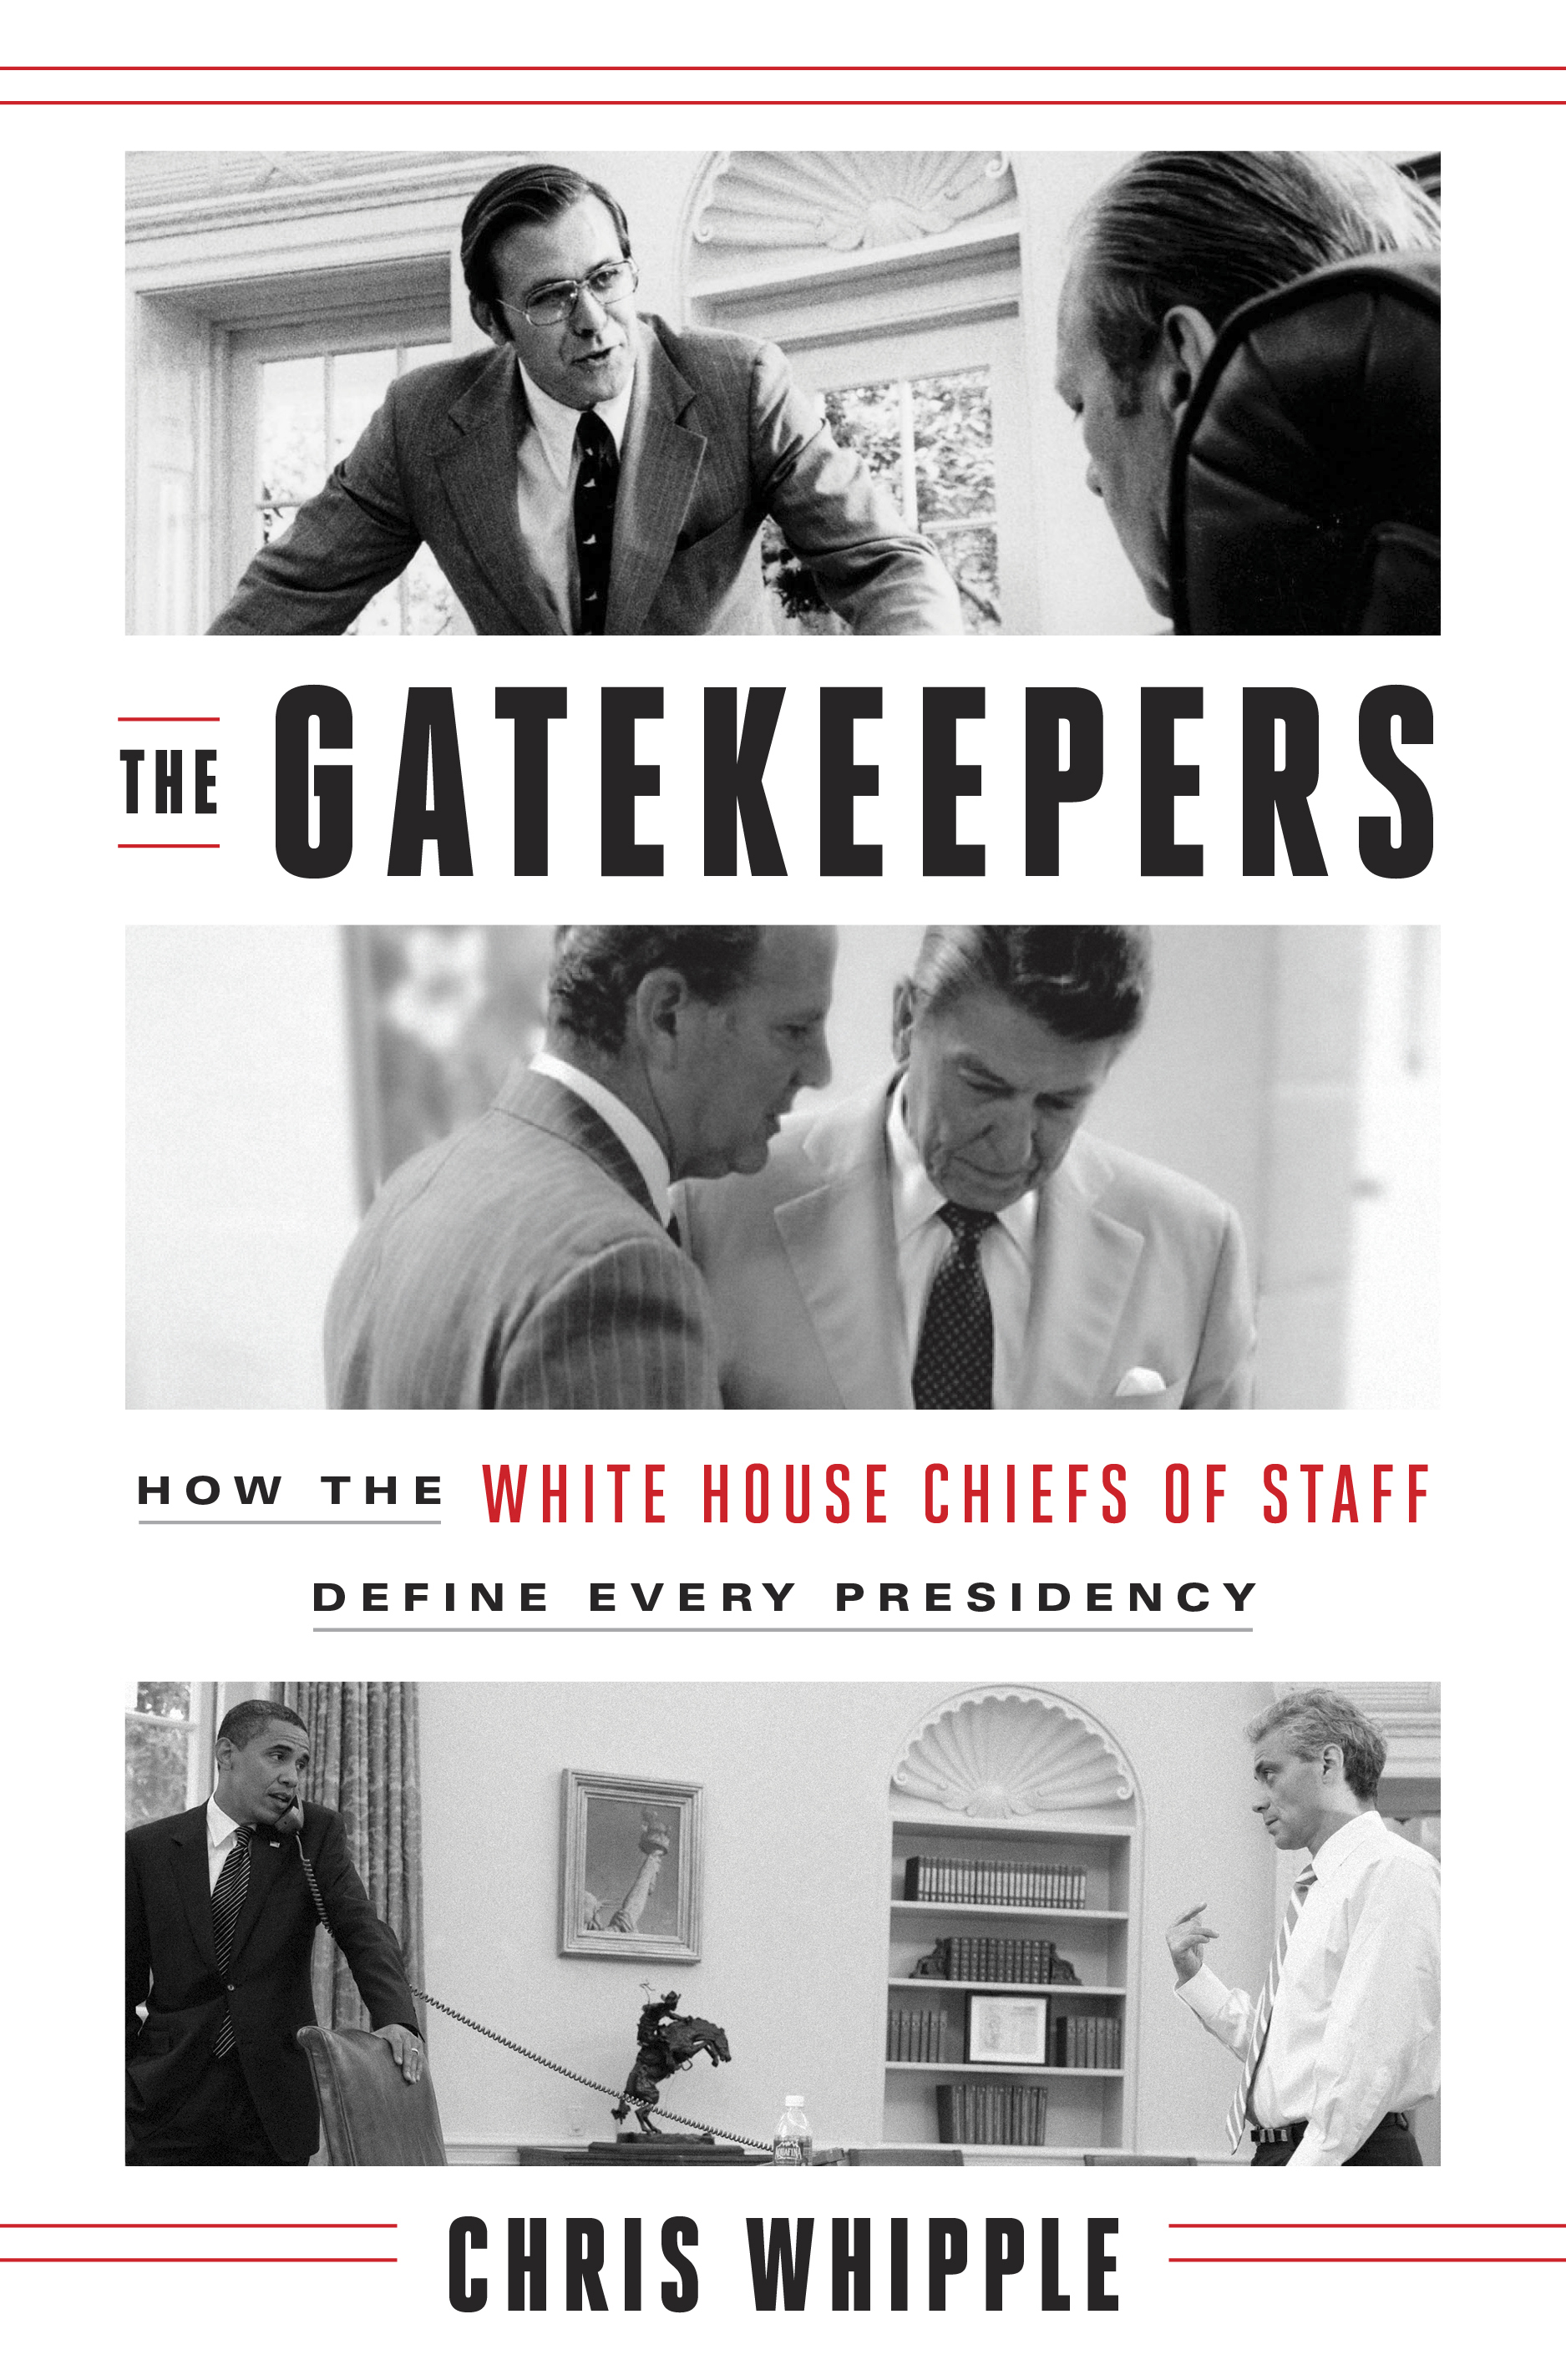 The Gatekeepers Book Cover Image.jpg